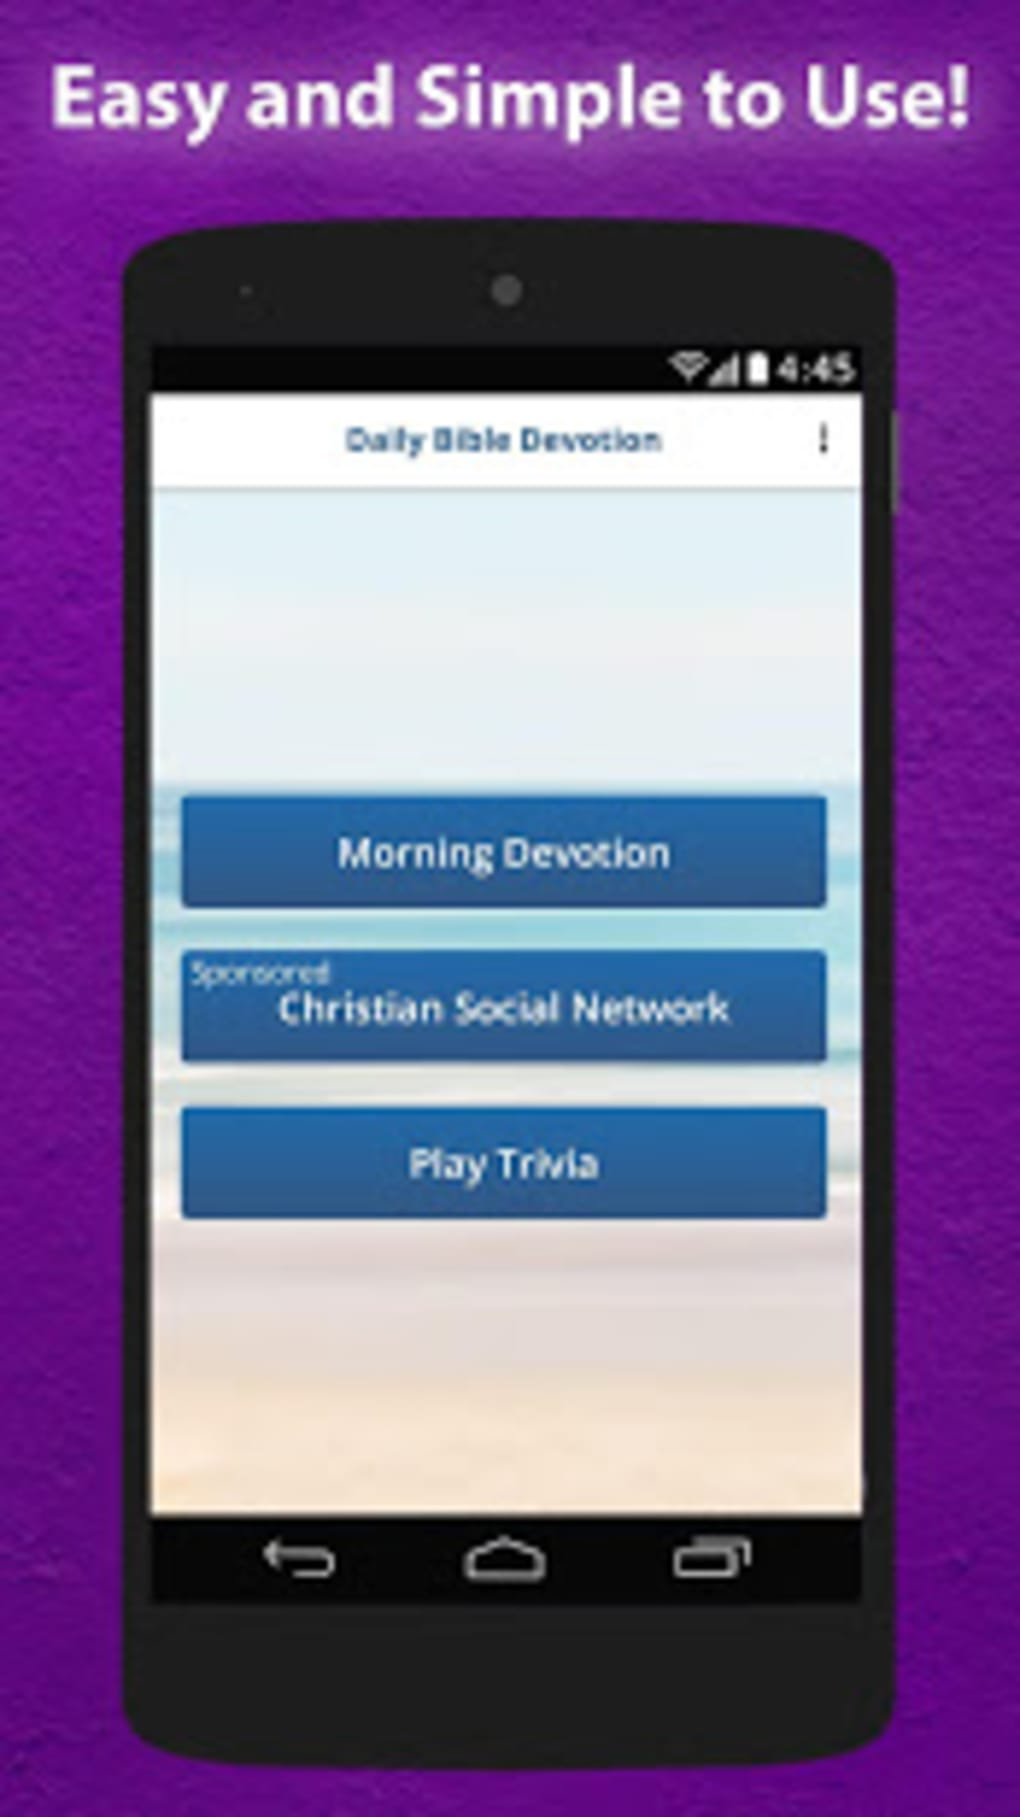 Daily Bible Devotion Bible App Caller ID Screen for Android - Download